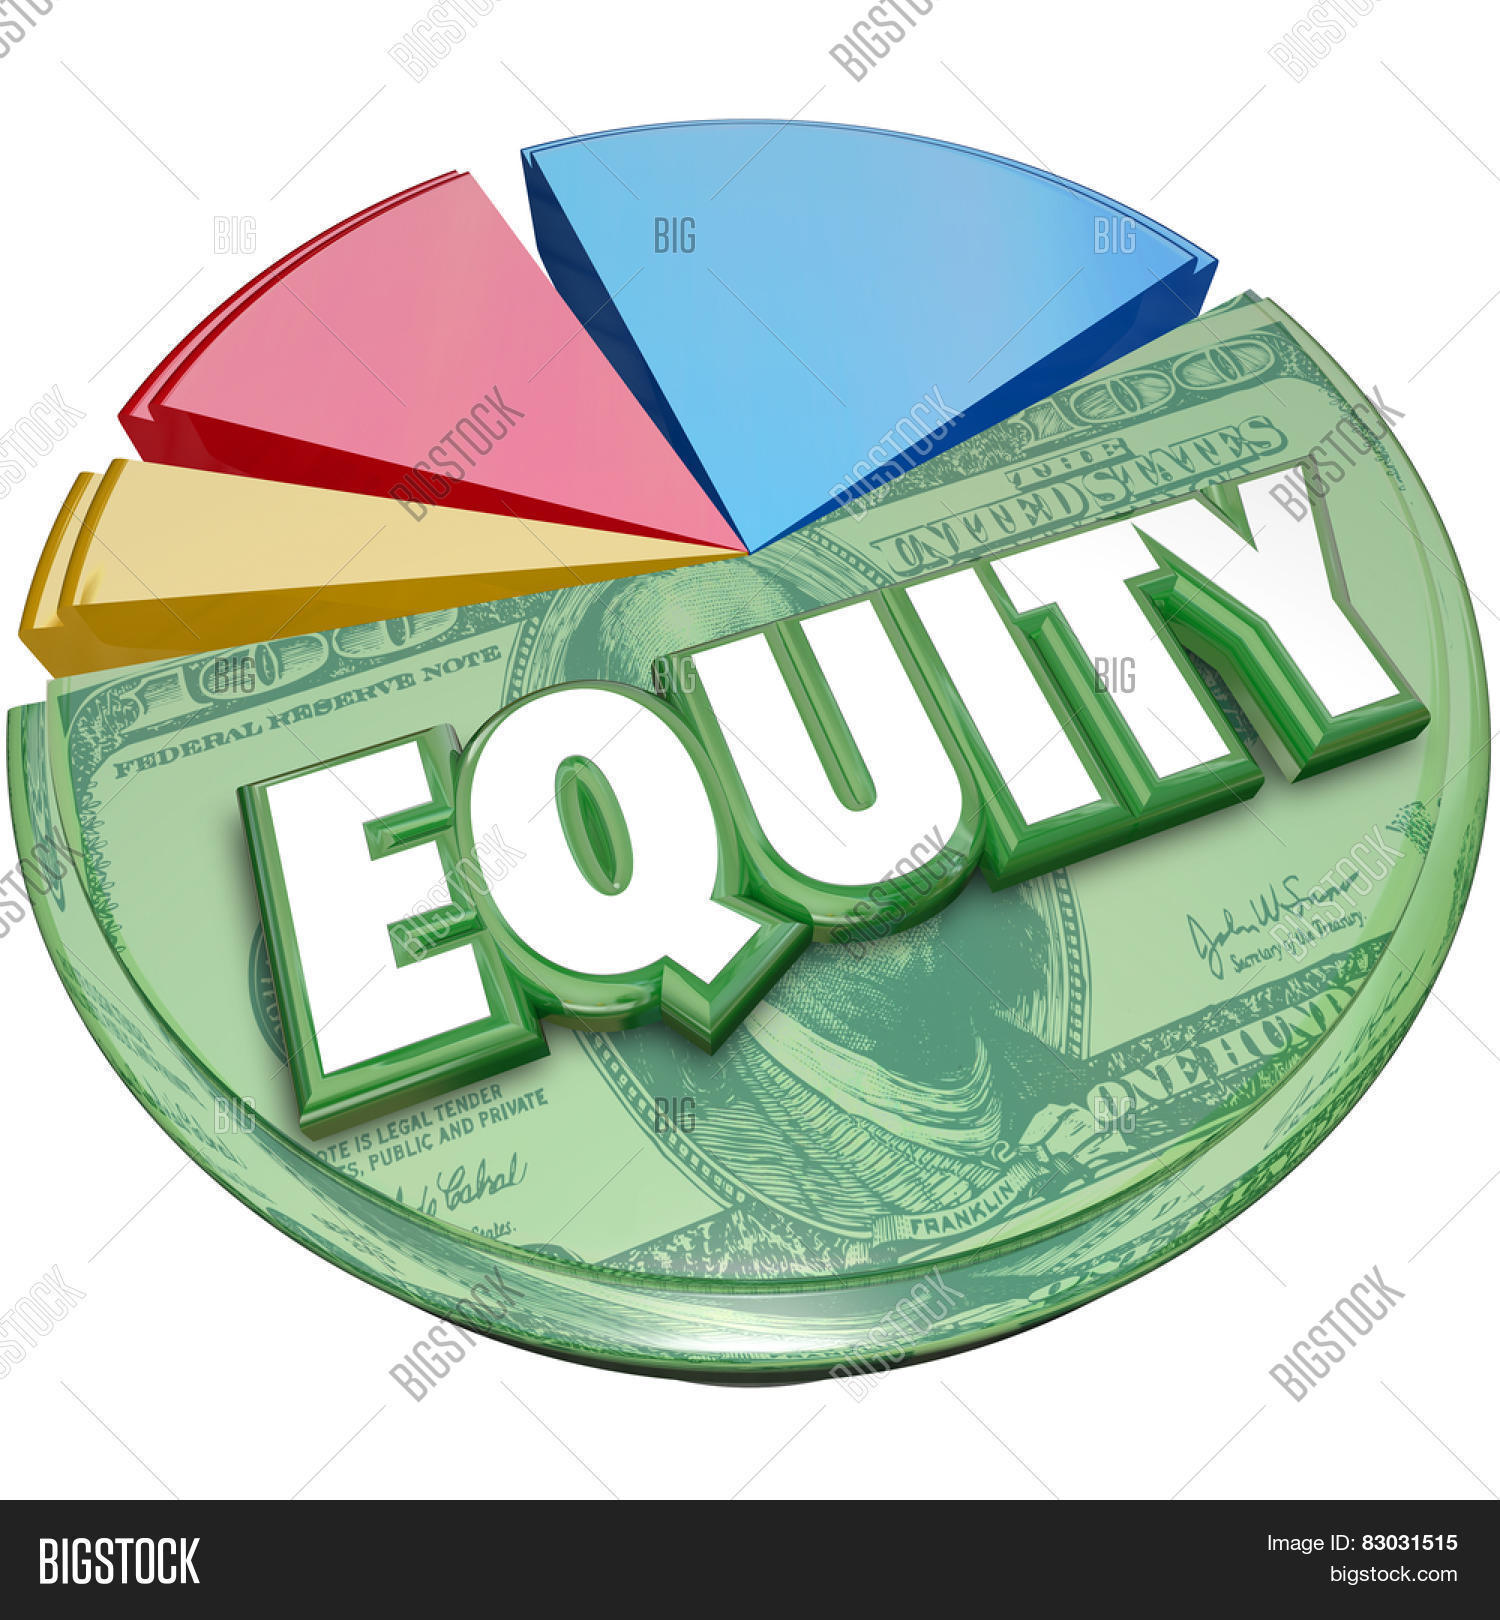 Equity word on pie chart illustrate image photo bigstock equity word on a pie chart to illustrate stock balance investment account for amount owed or nvjuhfo Image collections